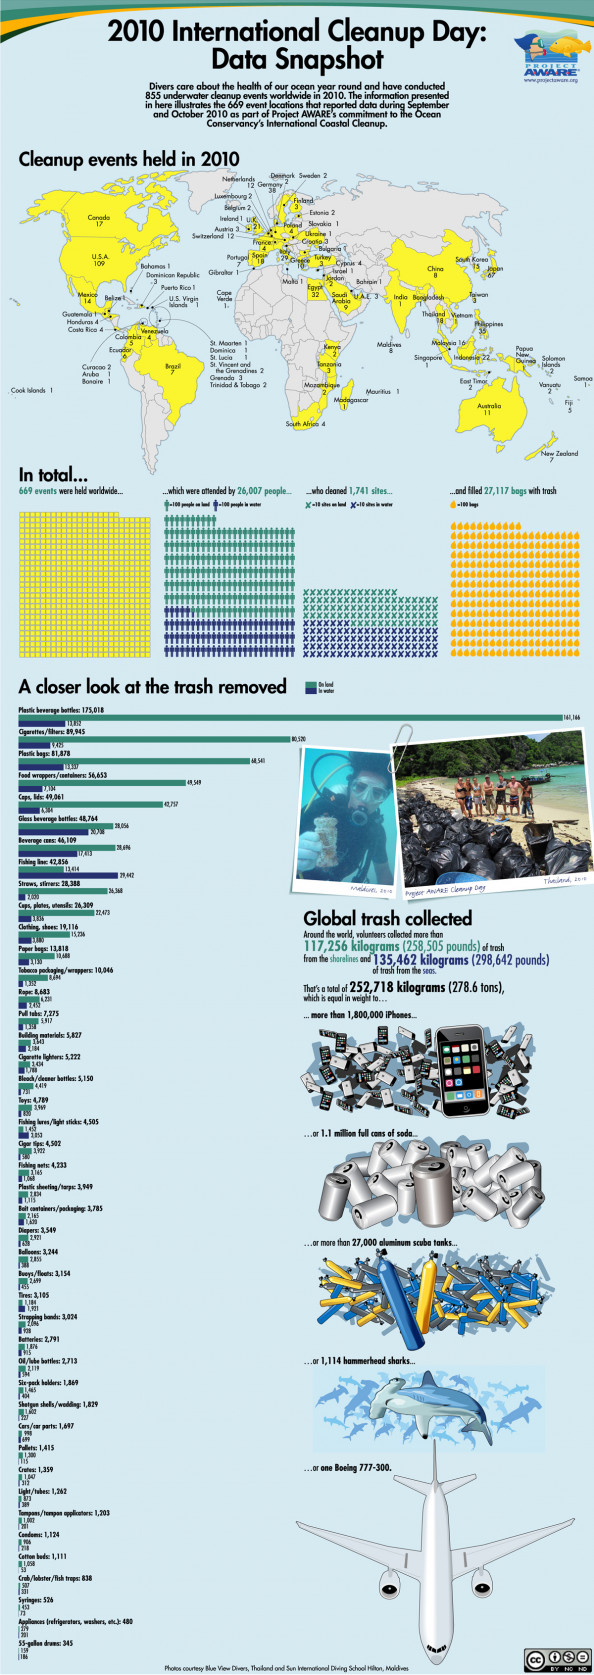 2010 International Cleanup Day: Data Snapshot Infographic